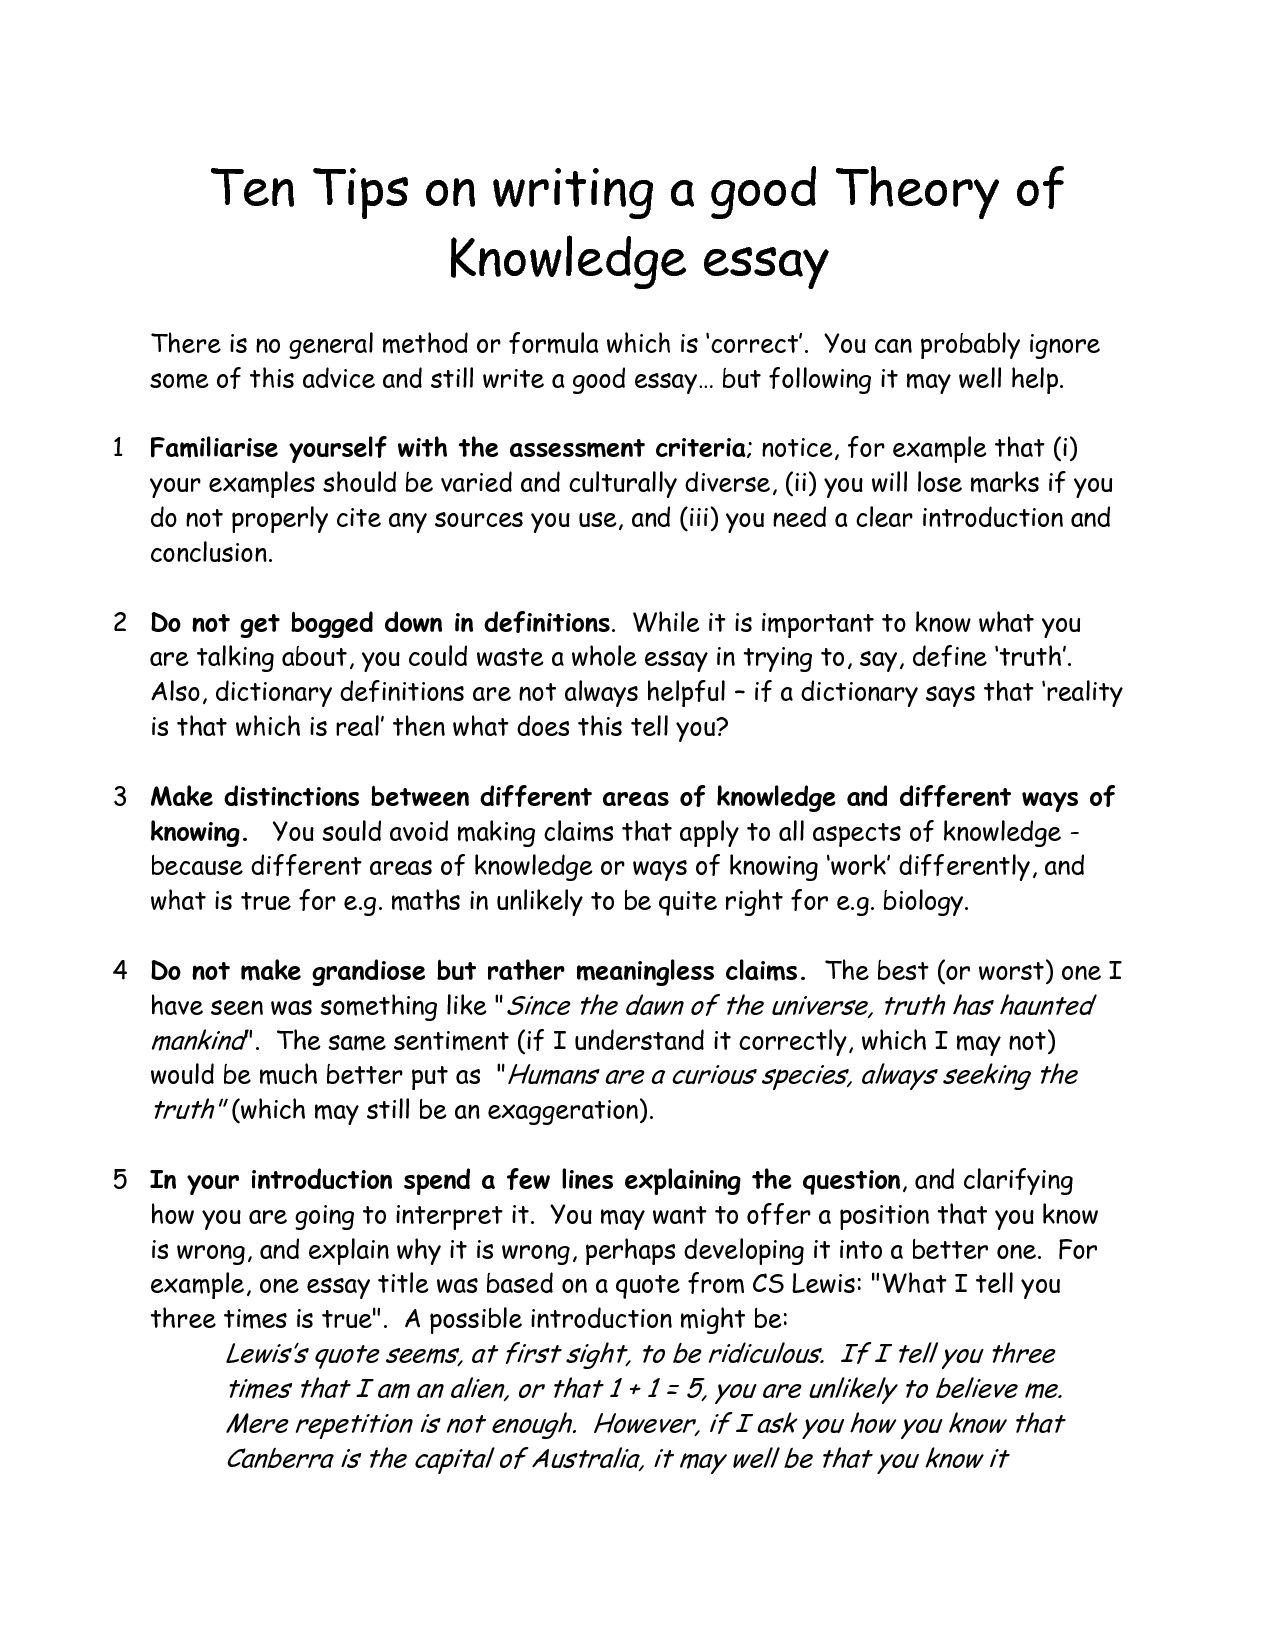 Custom Essay Papers Essay About Myself As A Writer Expository Essay Thesis Statement Examples also Compare And Contrast Essay Papers Essay About Myself As A Writer  An Essay About Myself Writing  Analysis Essay Thesis